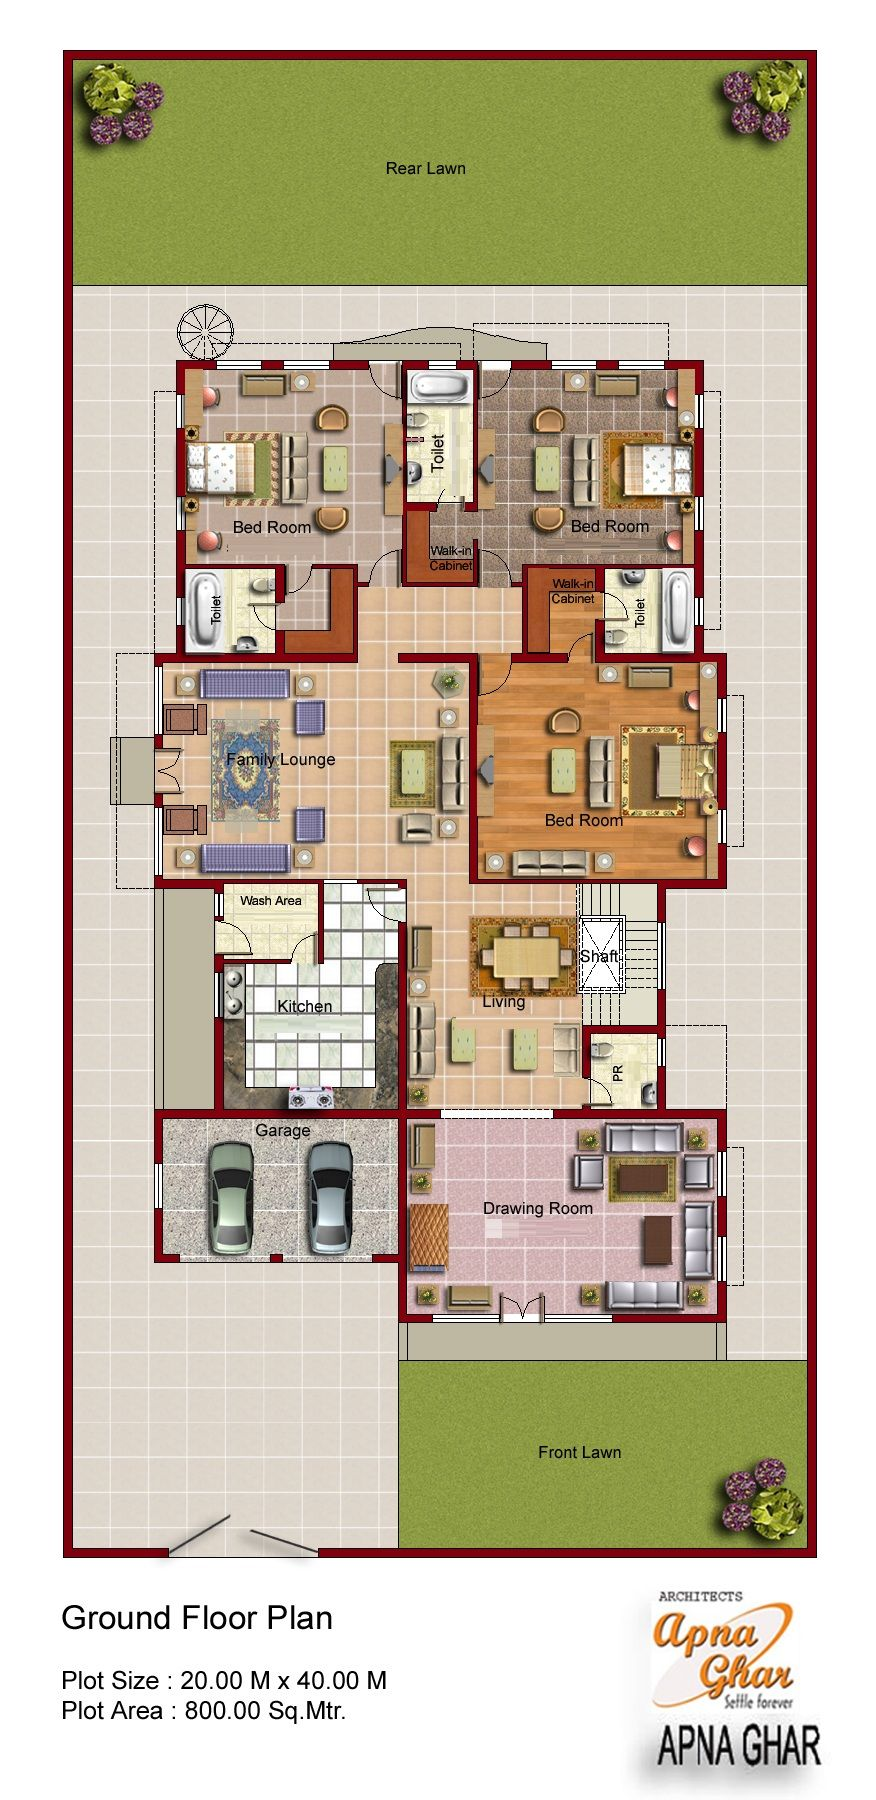 2d floor plan for modern duplex 2 floor house area 800 for Duplex plan design